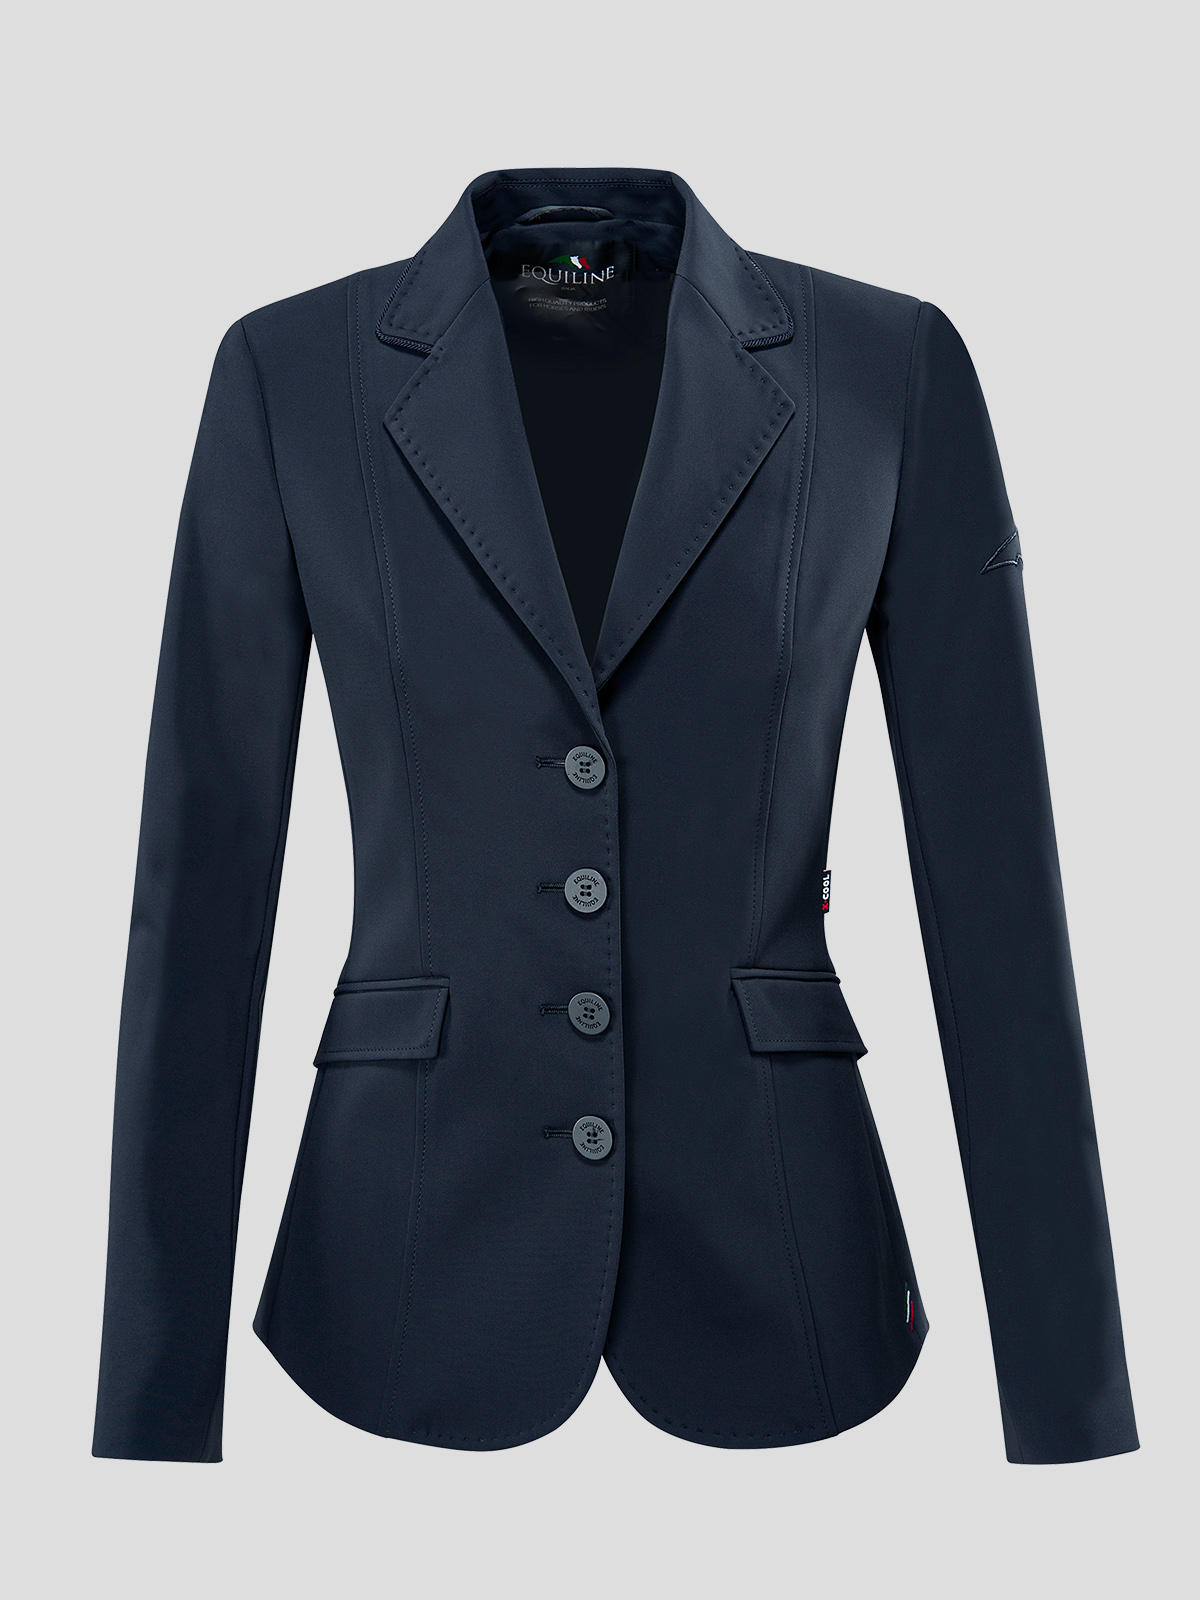 WOMEN'S SHOW JACKET WITH OUTLINE LOGO IN X-COOL 5